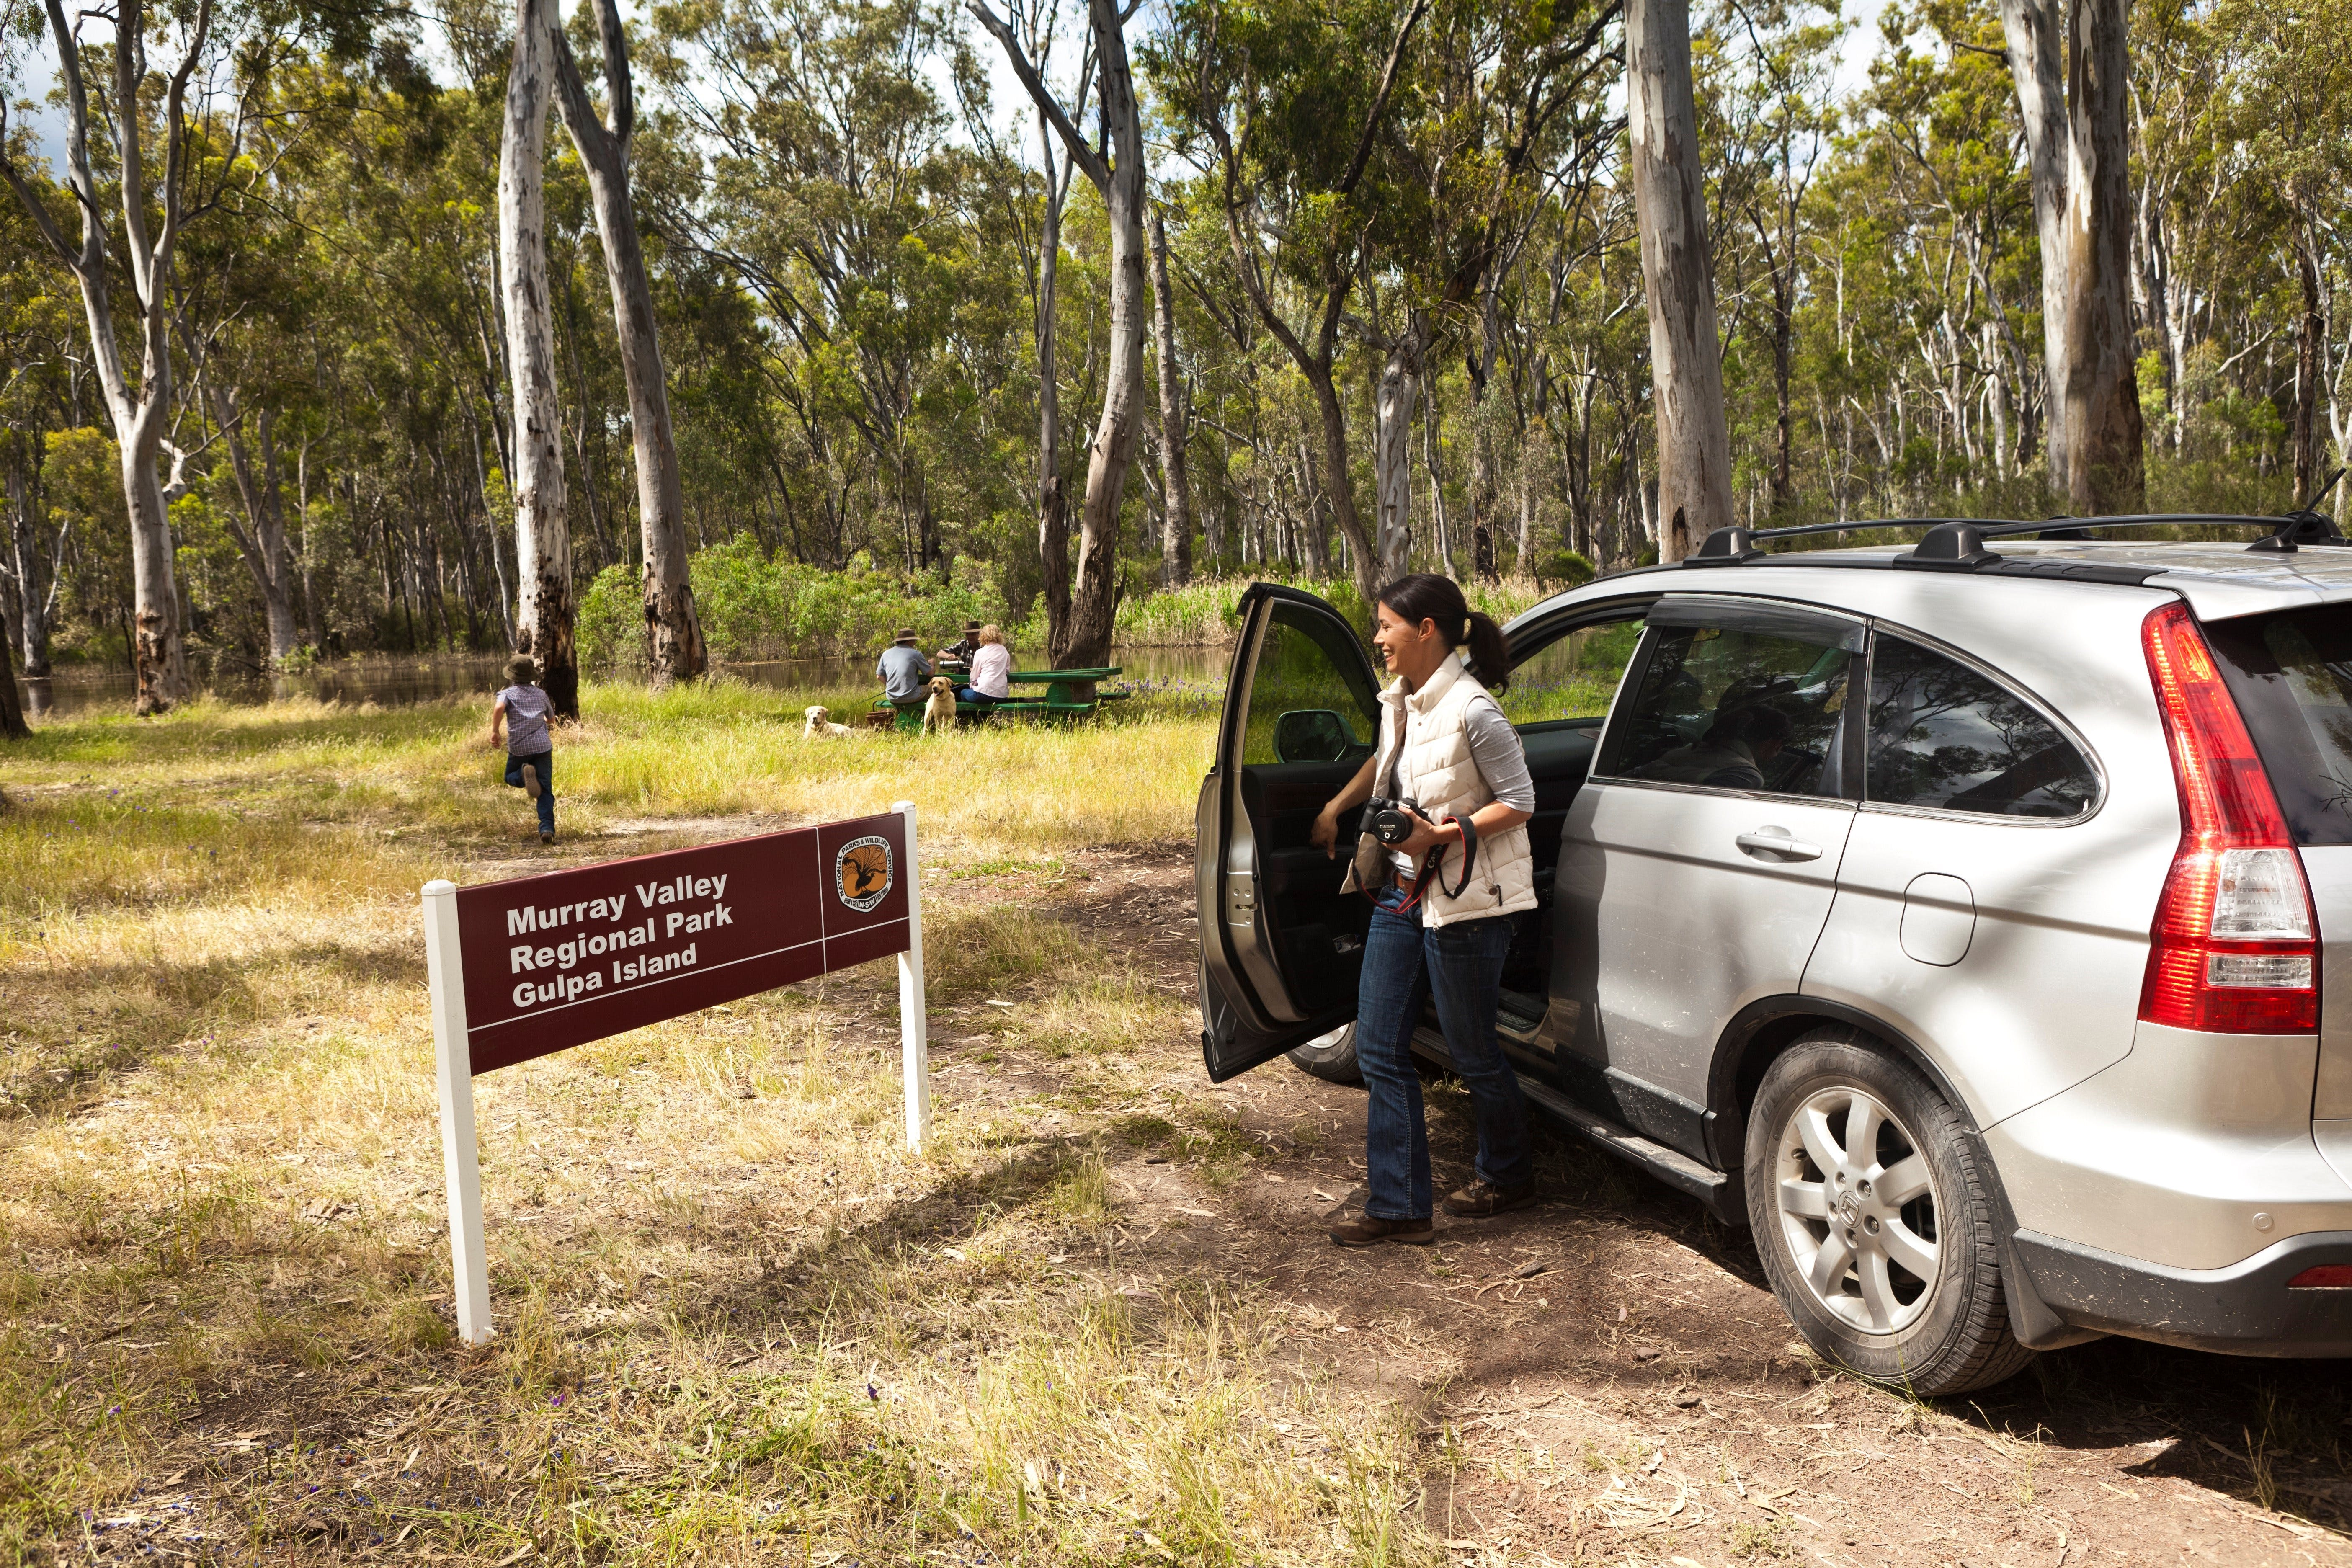 Murray Valley Regional Park - Accommodation Search